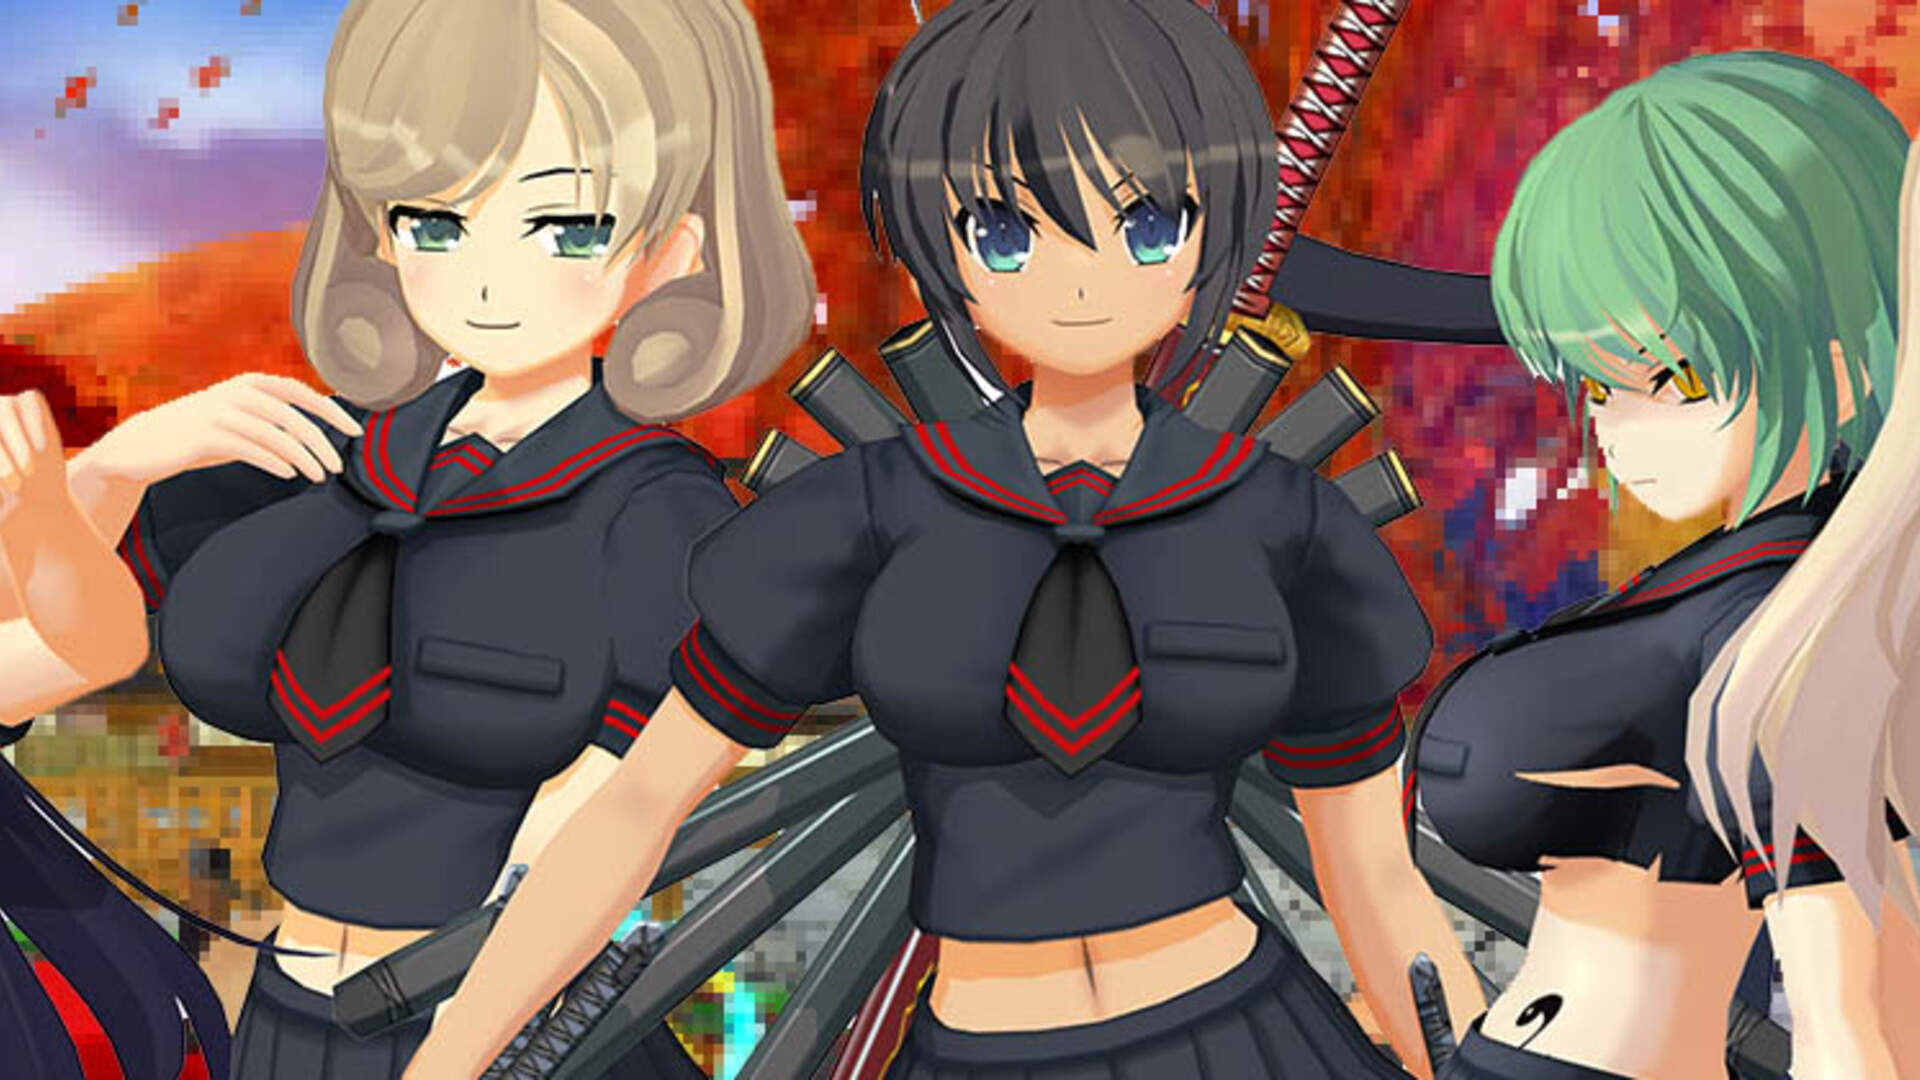 I Played Senran Kagura 2 in Public and Didn't Get Arrested for Indecency